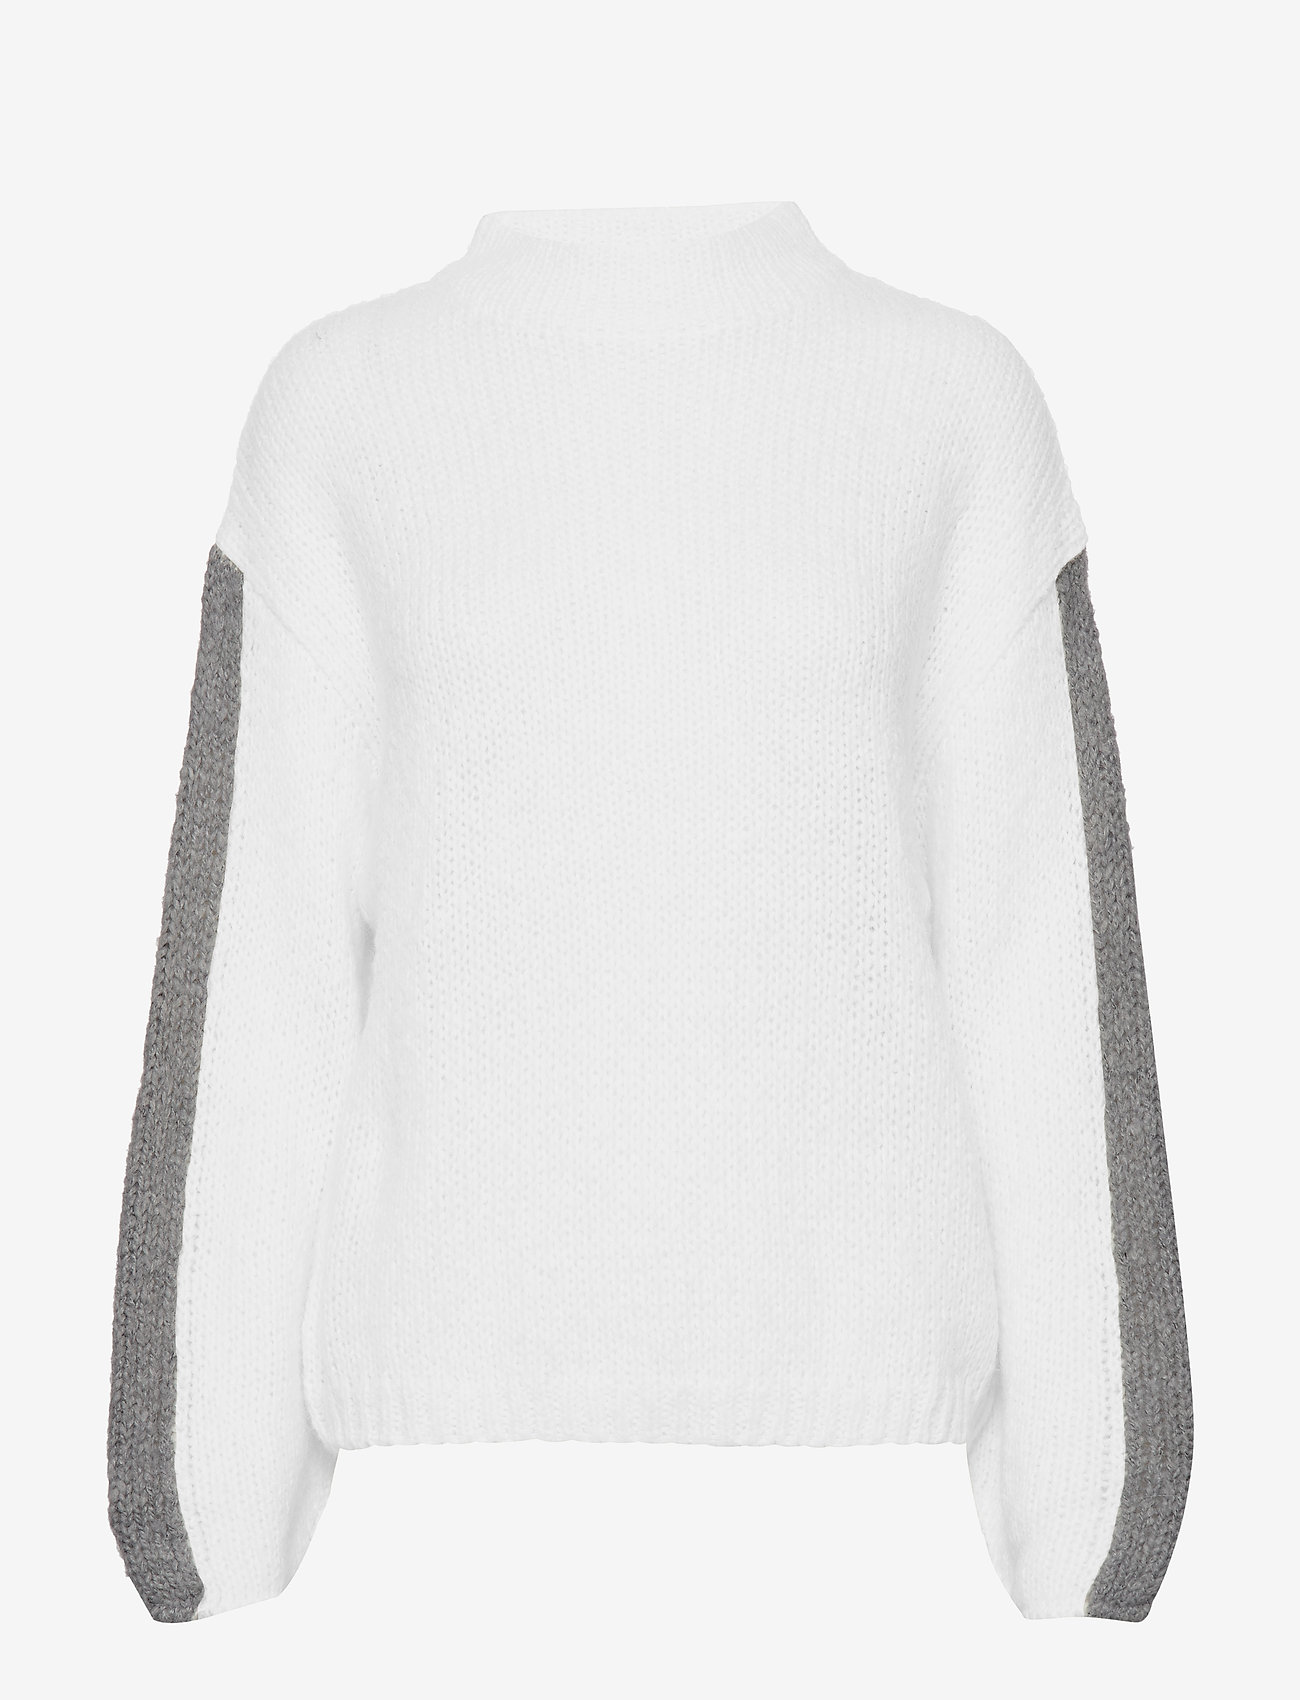 Lee Jeans - CHUNKY KNIT - gensere - off white - 0